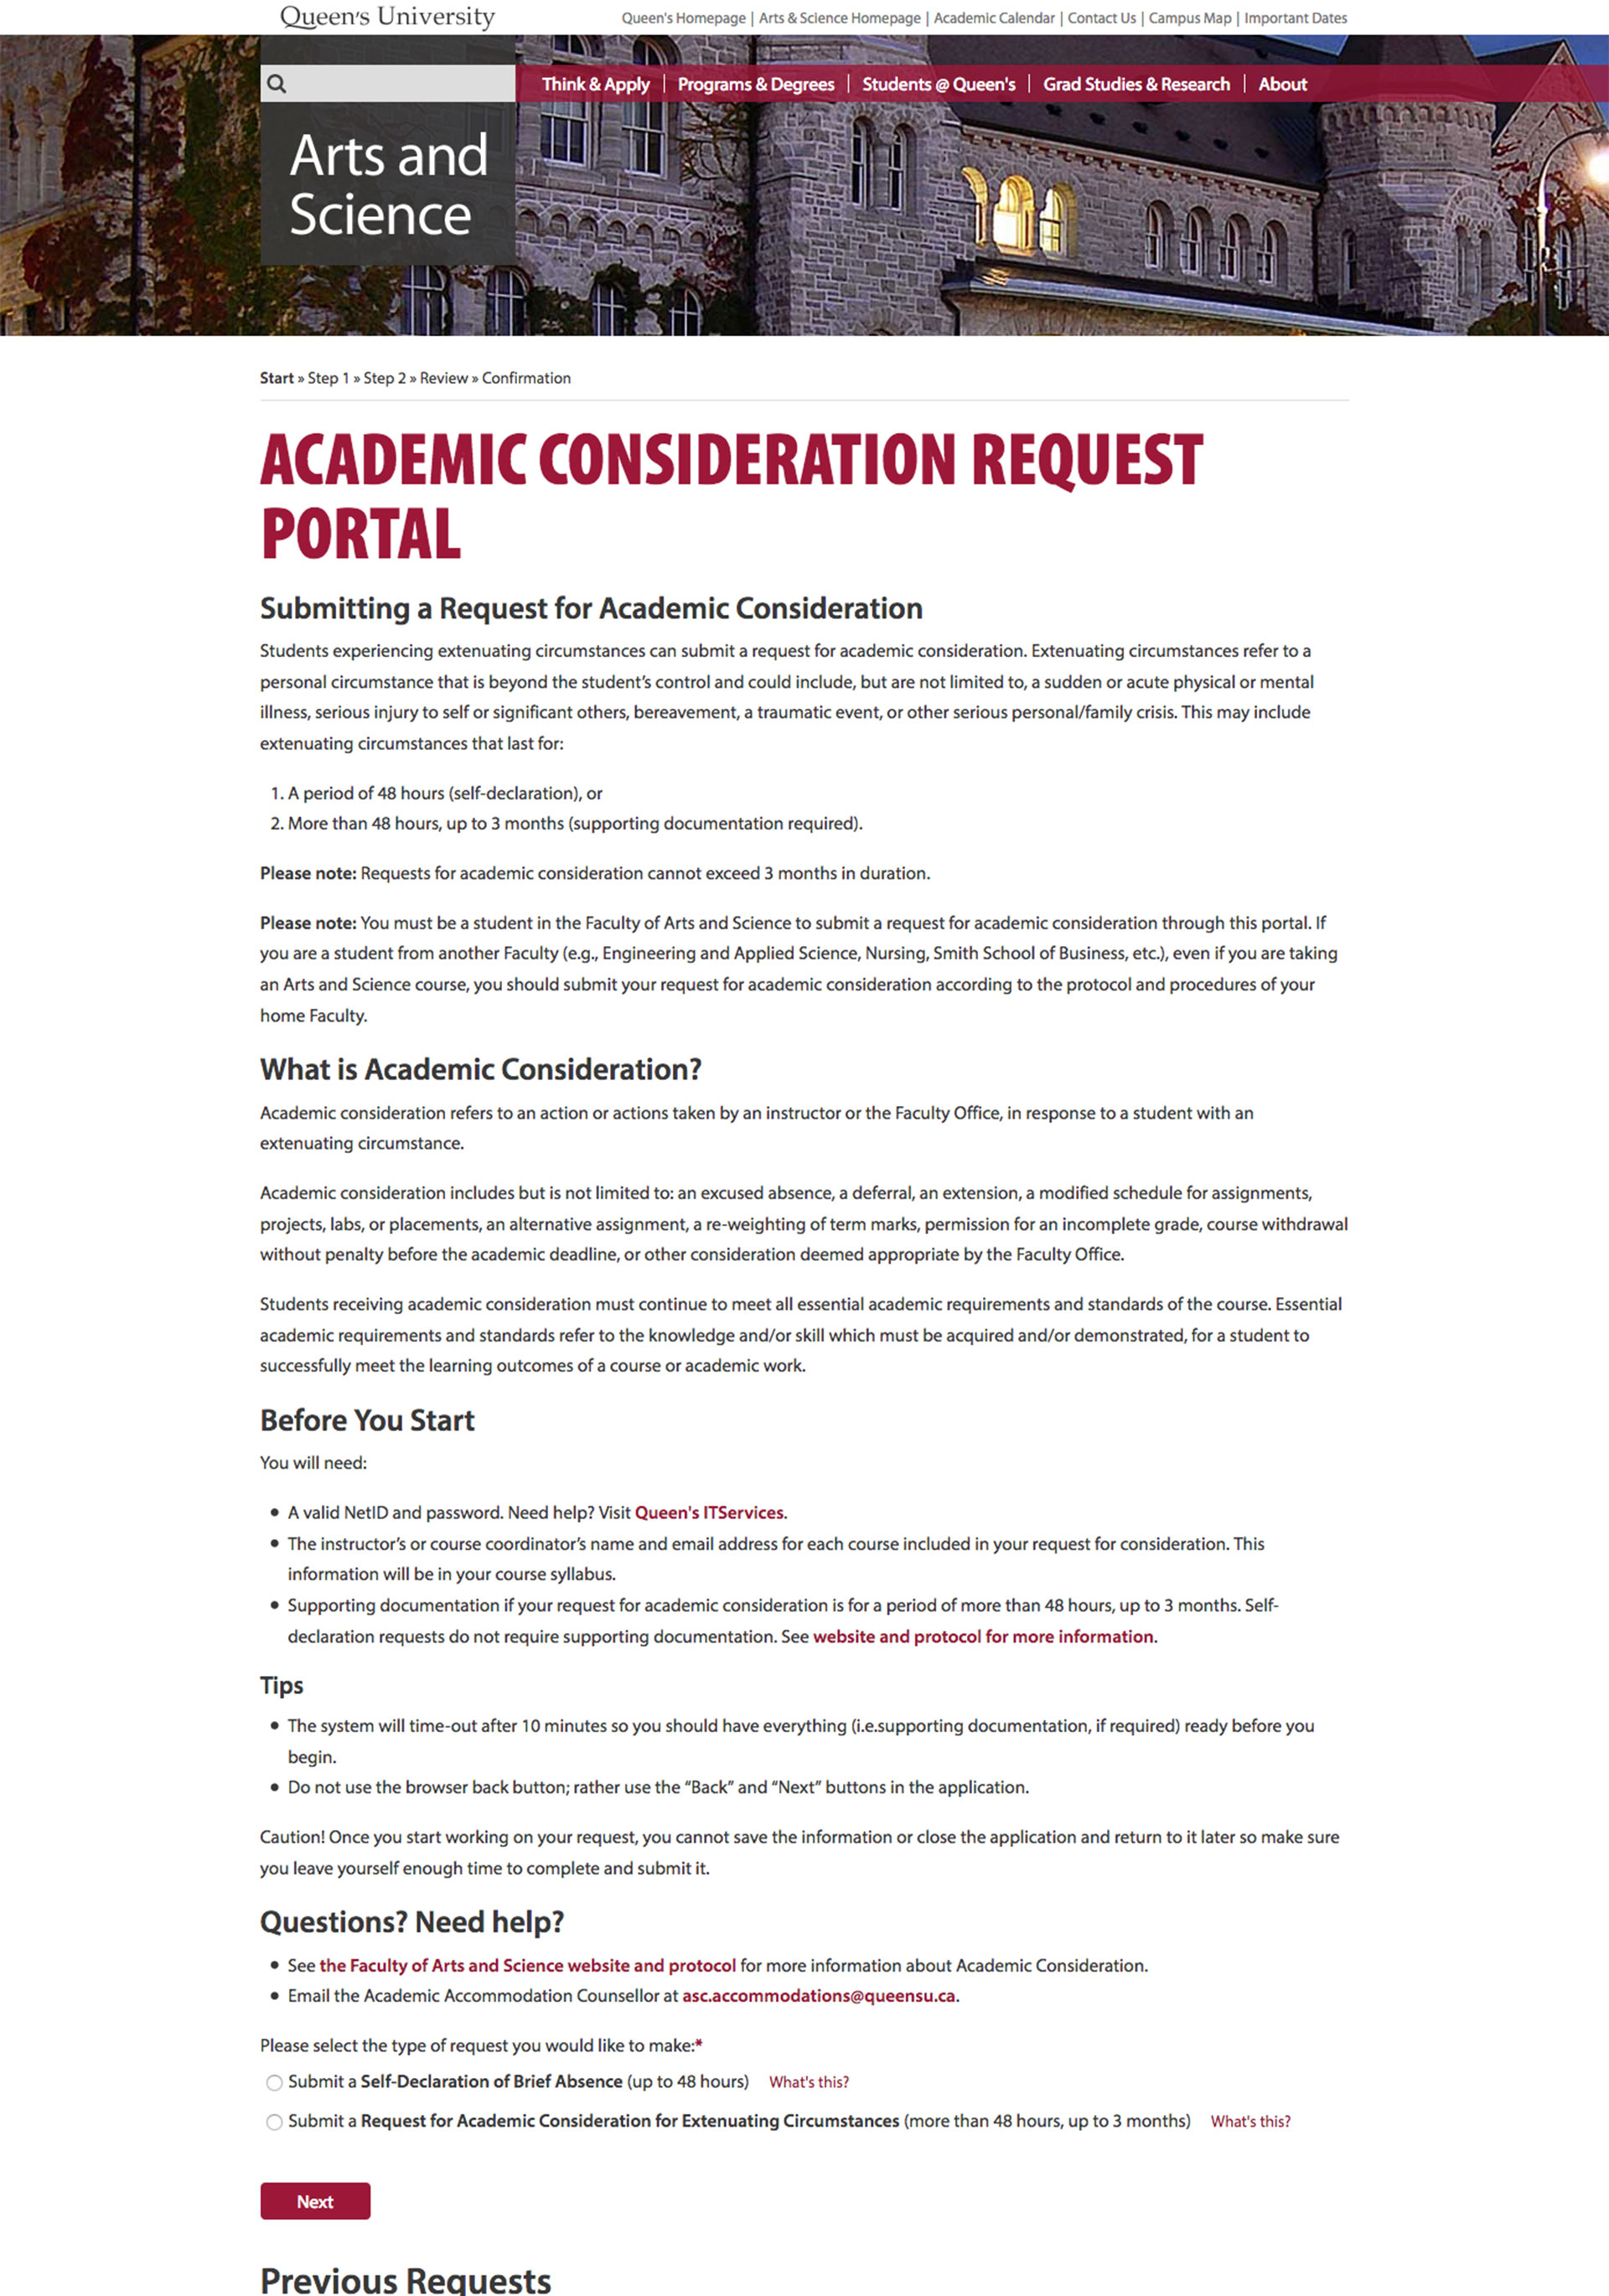 Academic Consideration Request Portal